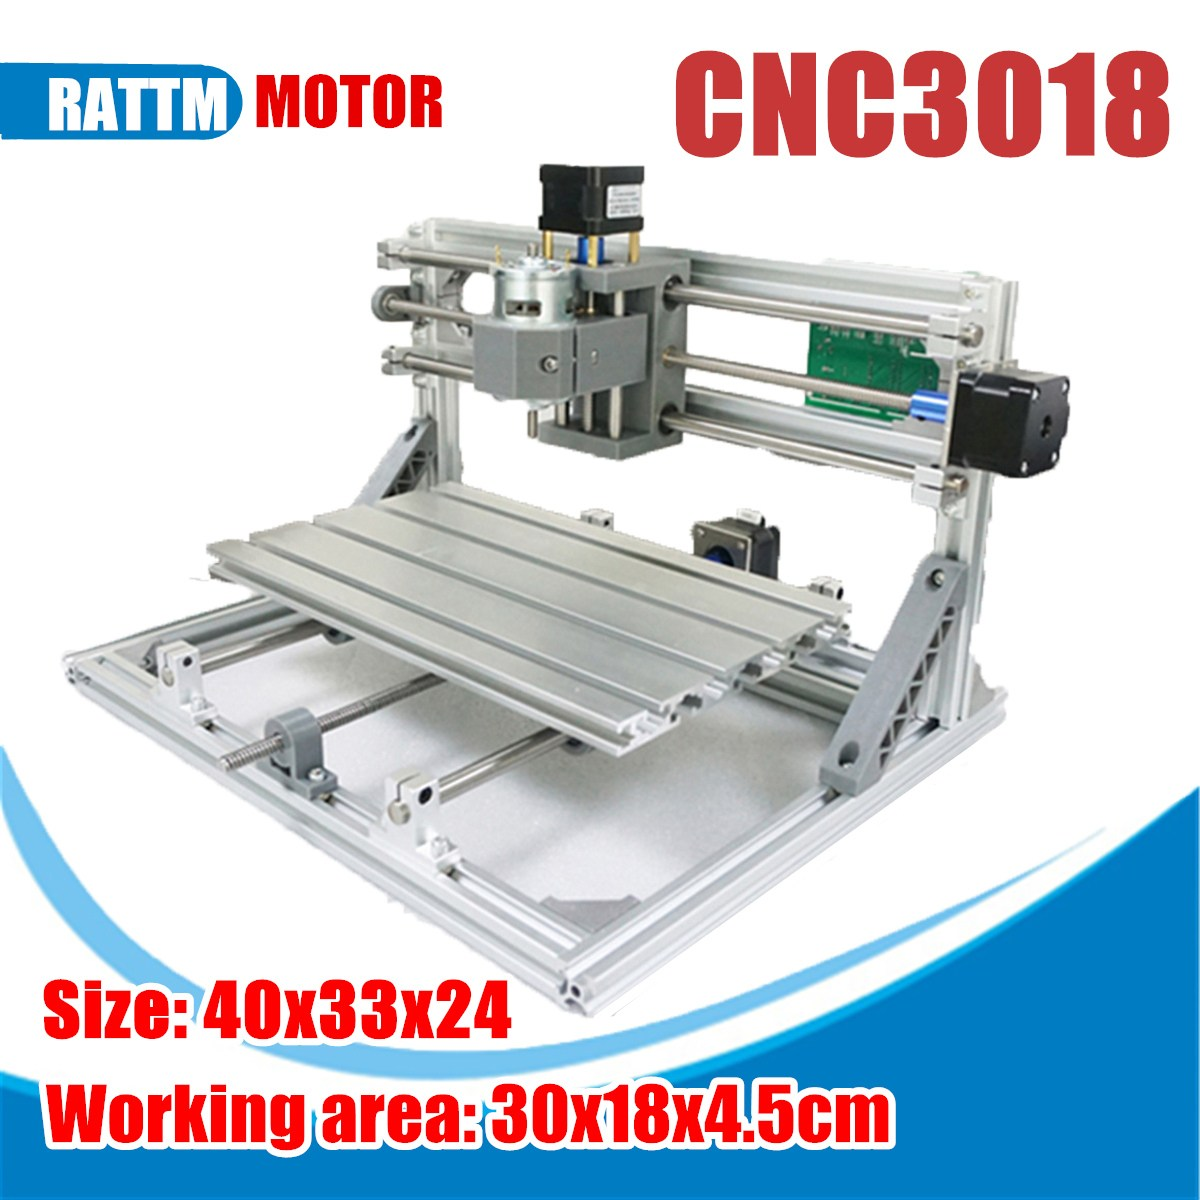 3 Axis 3018 ER11 GRBL Control DIY Mini CNC Router Laser Machine Pcb Pvc Milling Wood Router Wood Router Laser Engraving daniu 3018 3 axis grbl control 500mw laser diy cnc router milling engraving machine working area 30x18x40cm